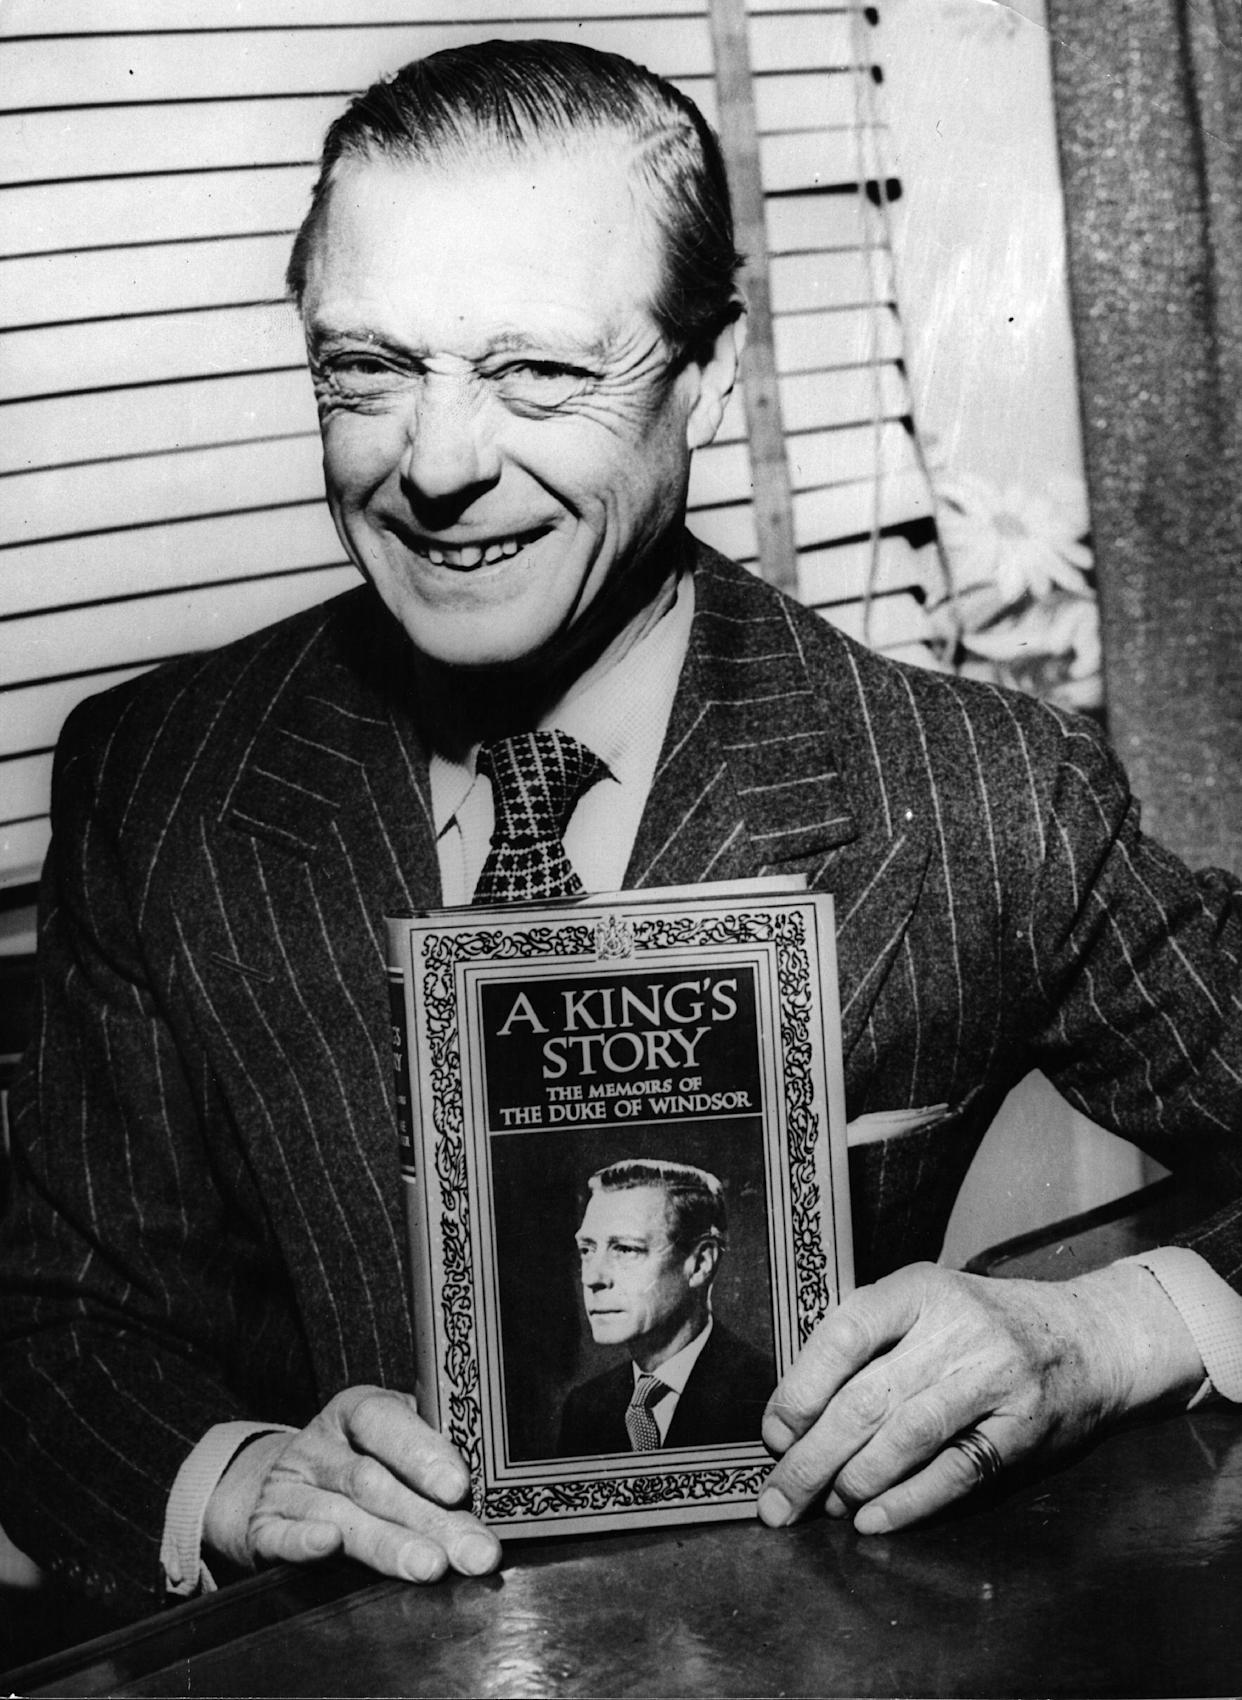 22nd April 1951:  The Duke of Windsor, formerly King Edward VIII of Britain until his abdication, in New York with a first edition copy of his book 'A King's Story'.  (Photo by Hulton Archive/Getty Images)